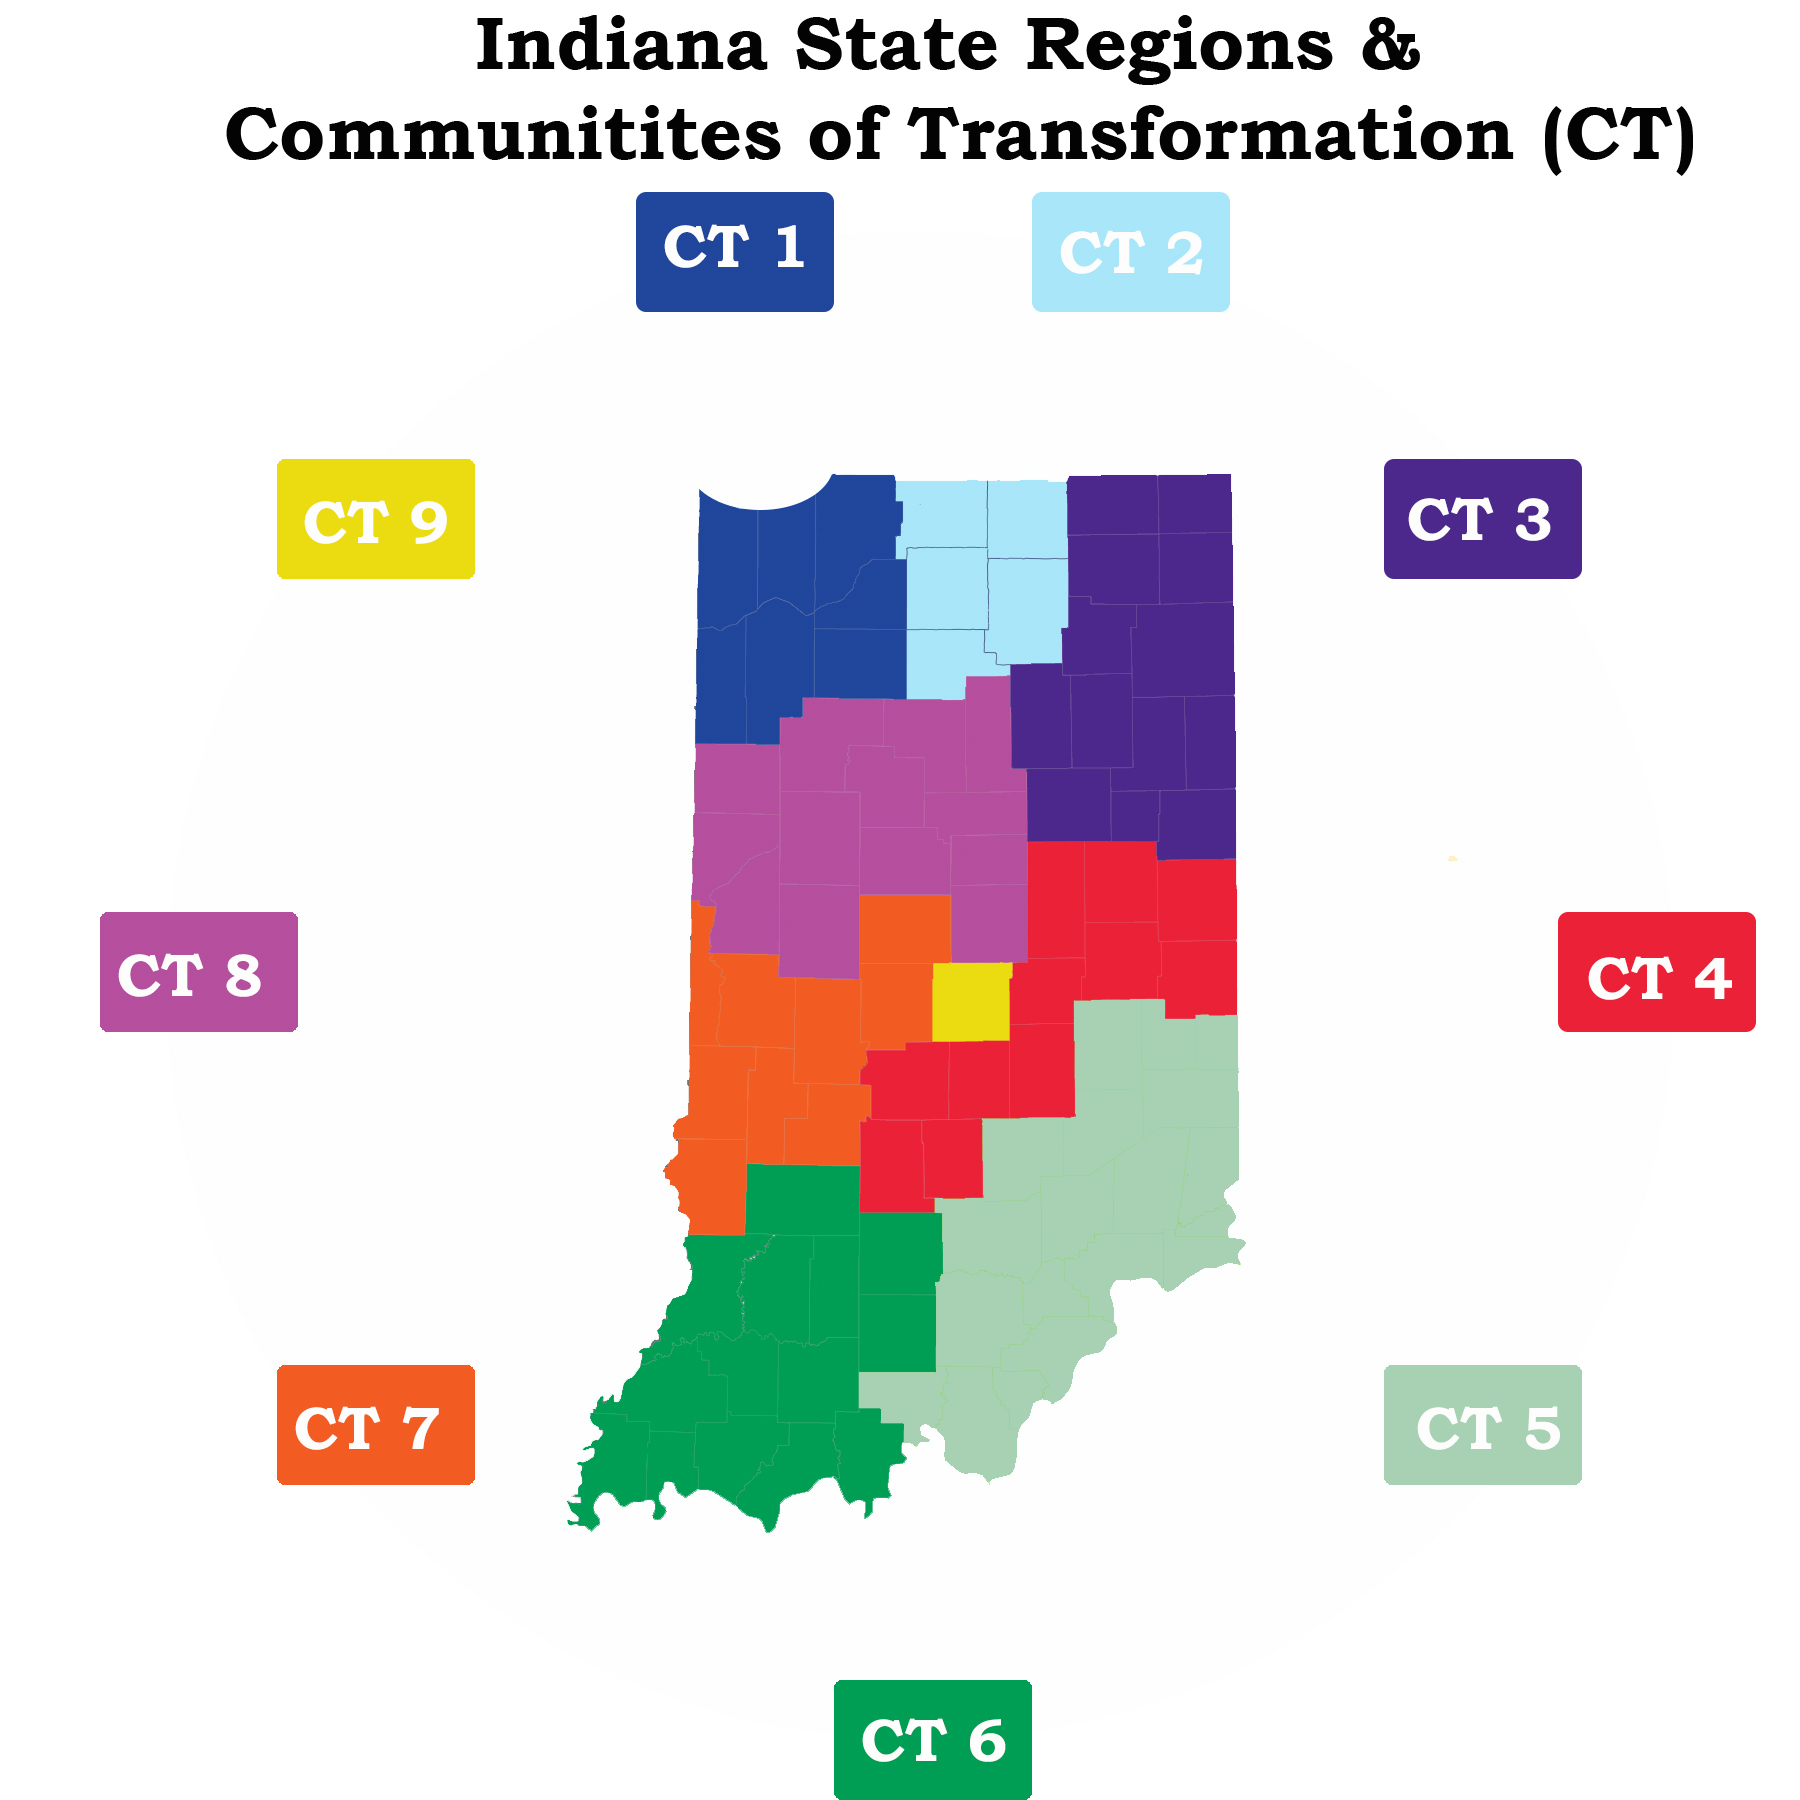 Indiana State regions and communities of transformation